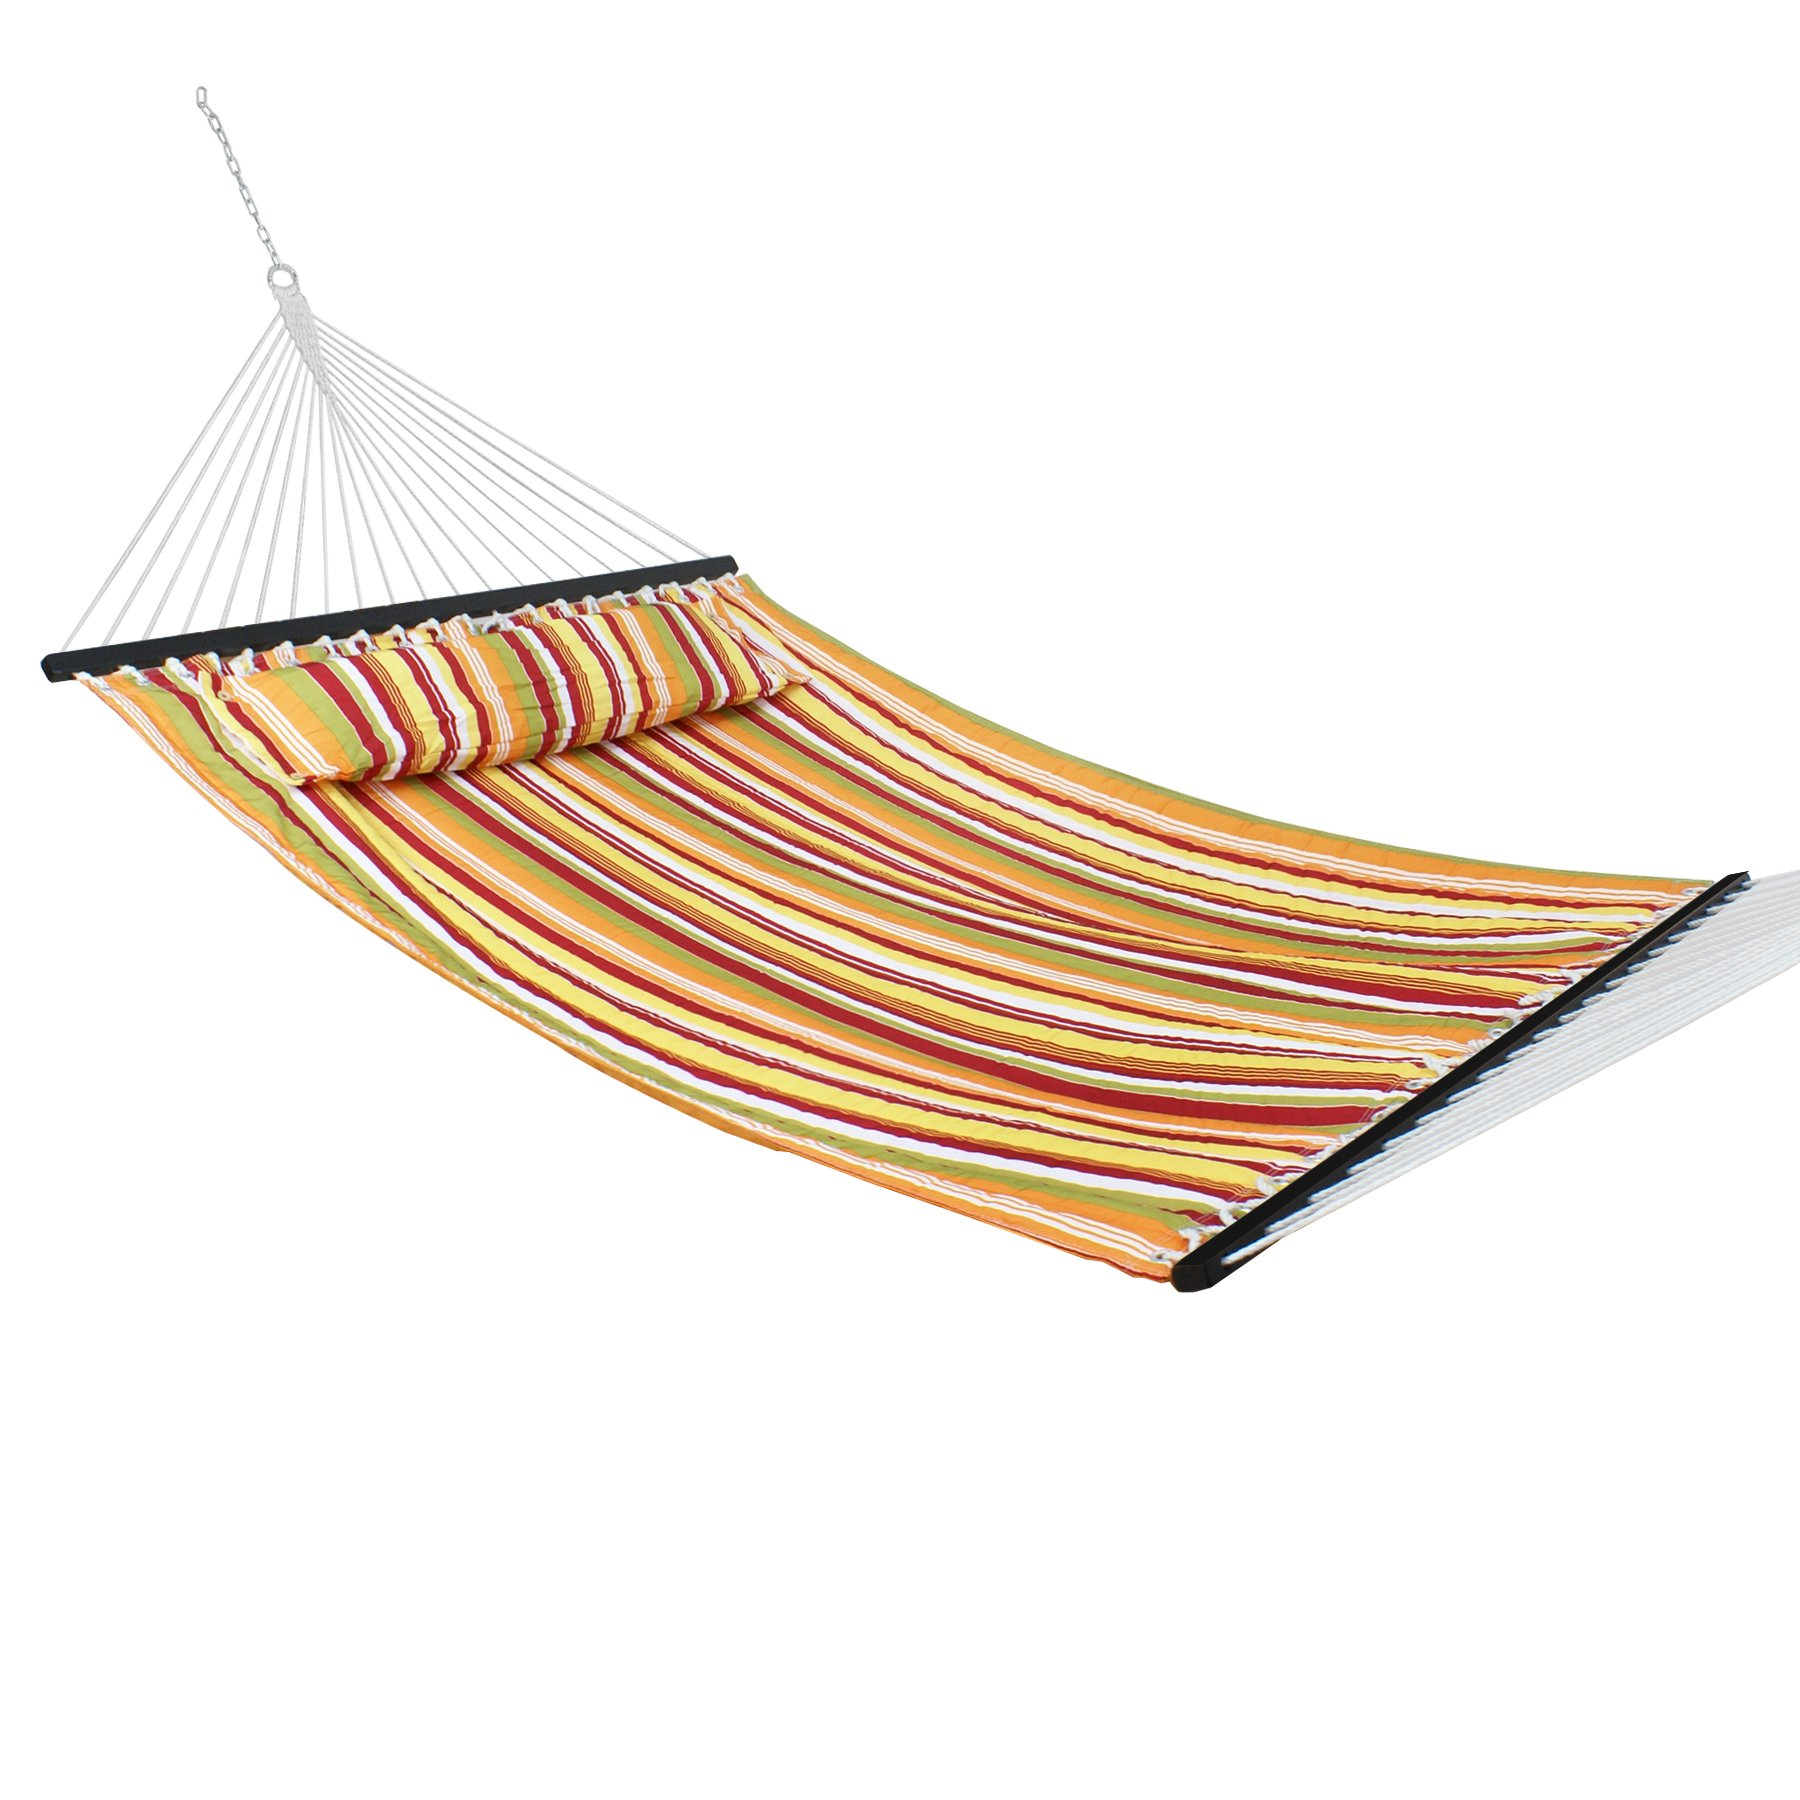 Nova Microdermabrasion Updated Quilted Fabric Hammock with Pillow Double Size Spreader Bar Heavy Duty Portable Outdoor Camping Hammock for Outdoor Patio Yard (480lbs Capacity) (Blue) (Yellow)